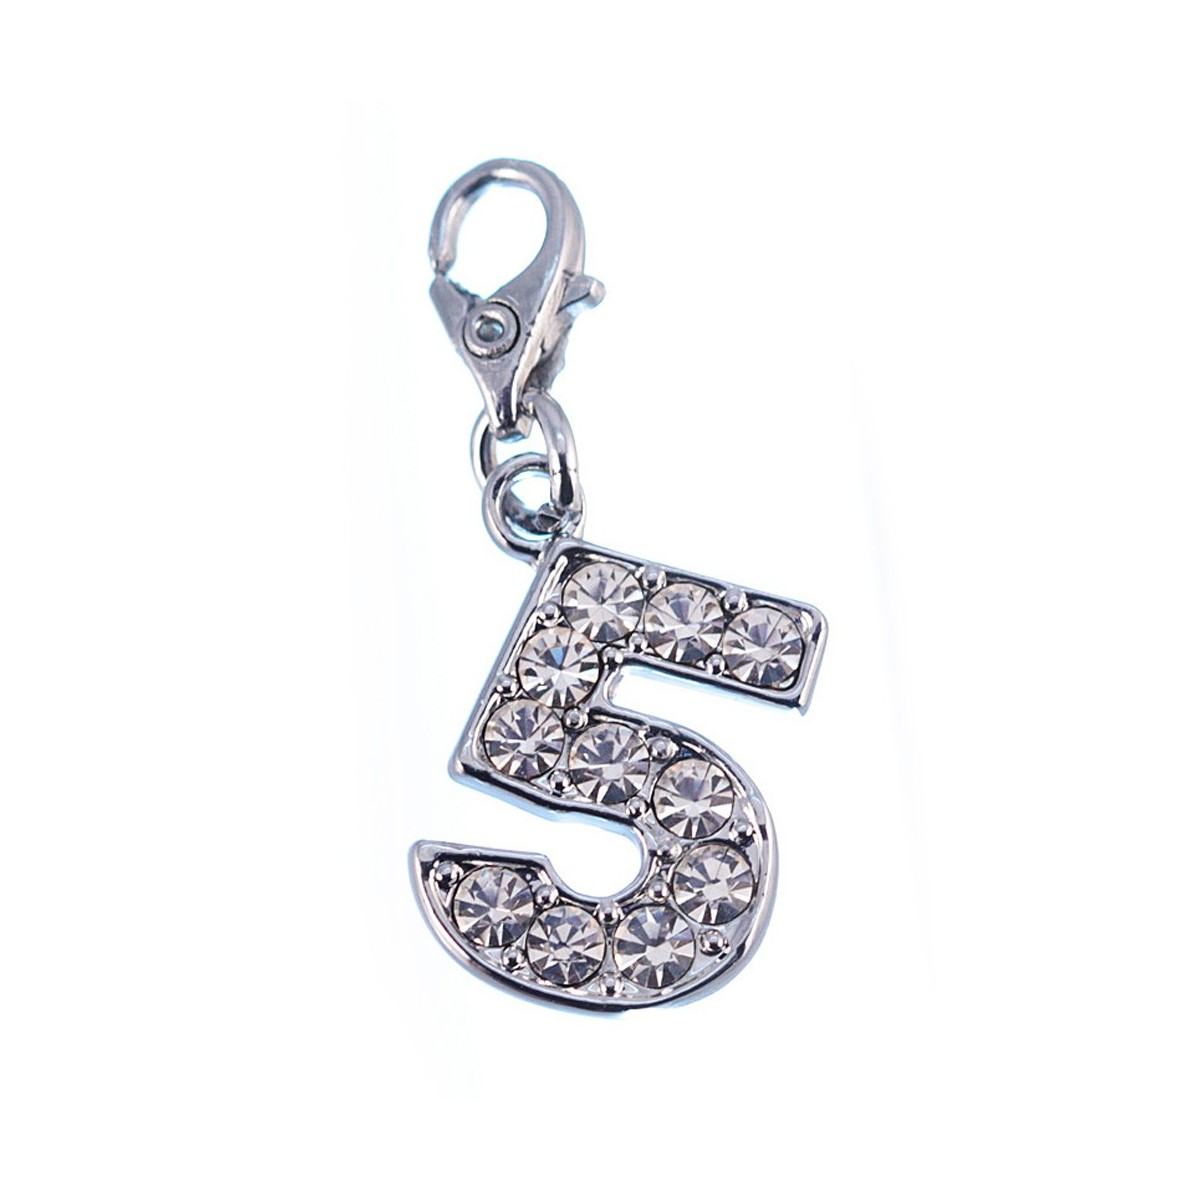 Charm Chiffre 5 So Charm made with Crystal from Swarovski